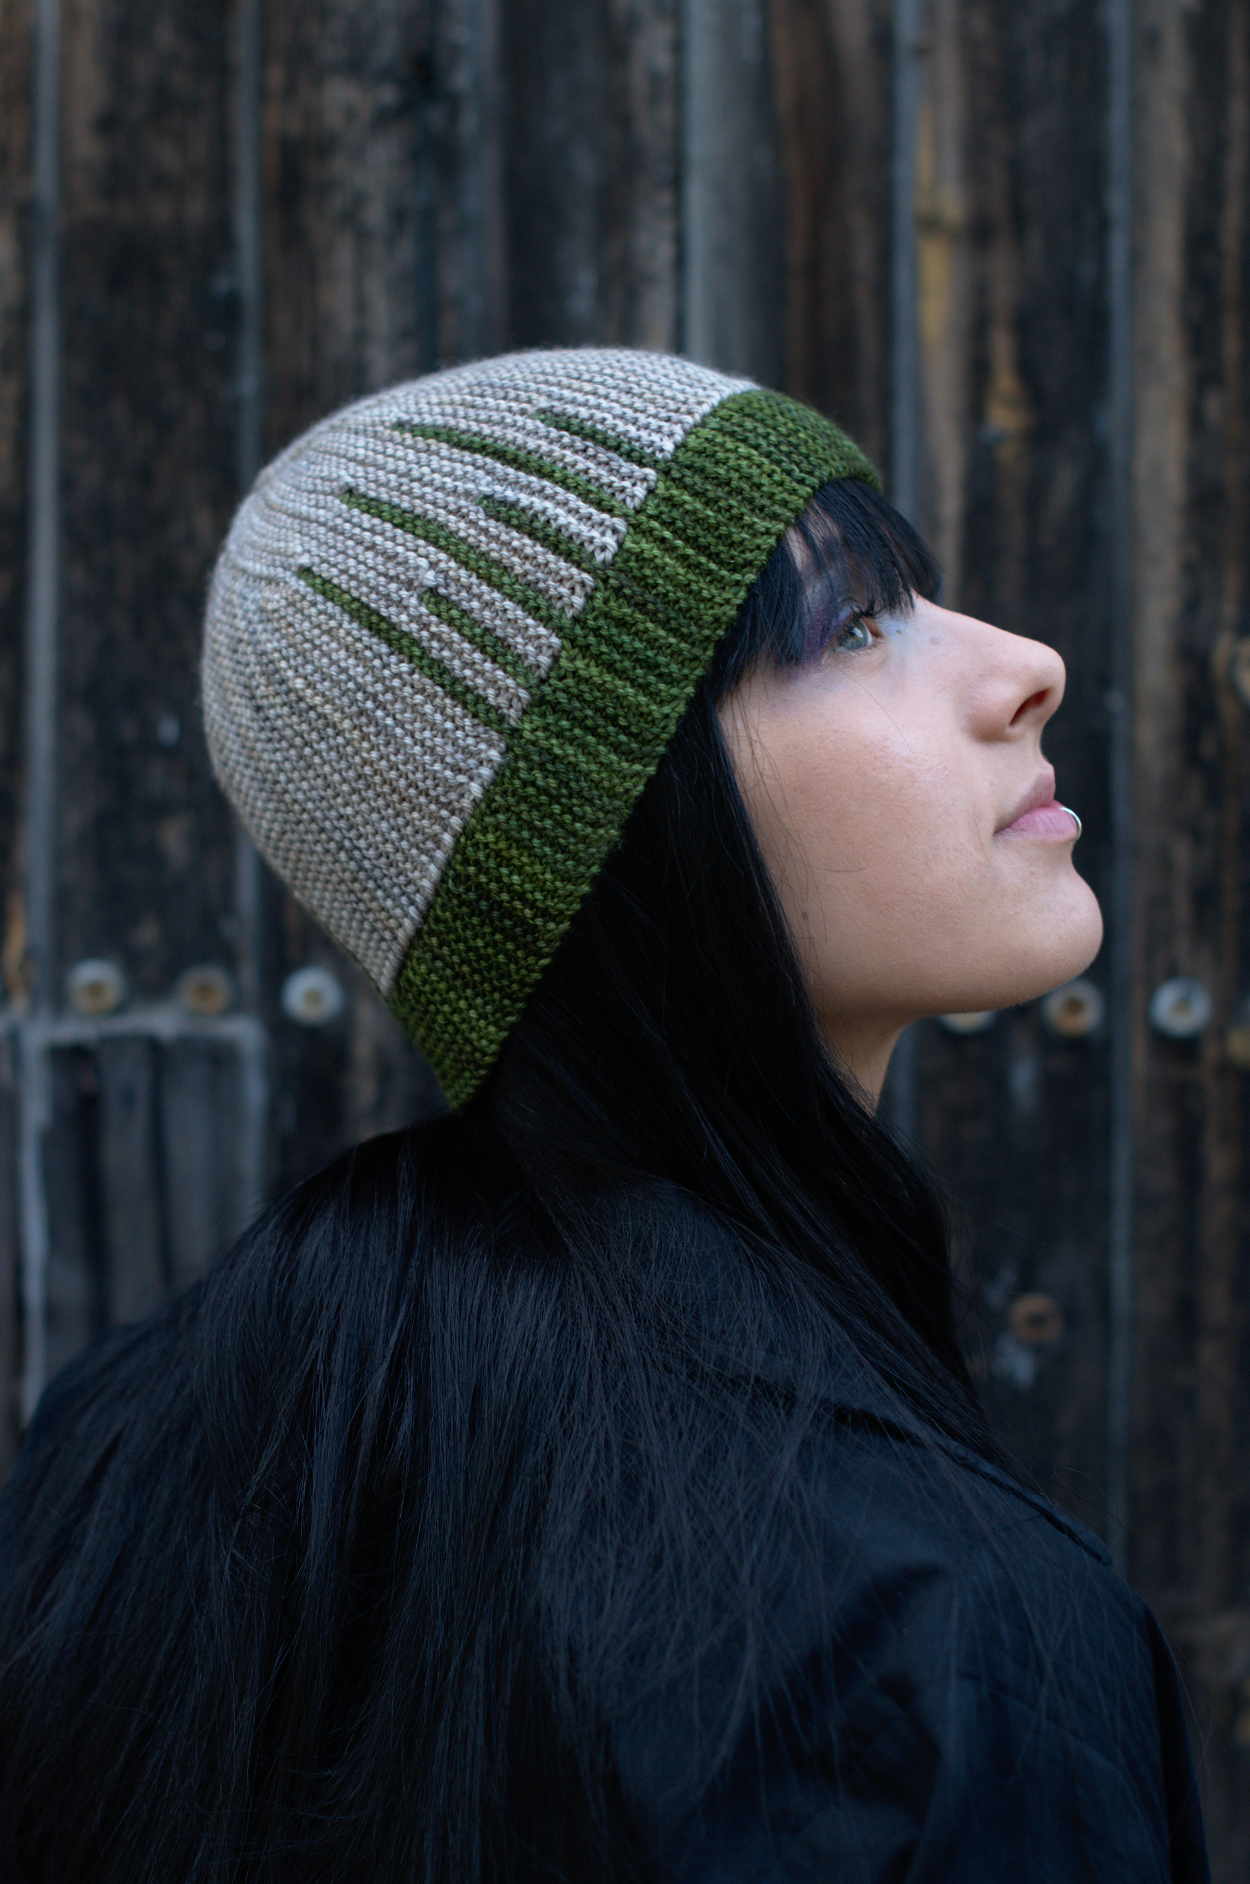 Parallelo sideways knit short row colourwork hand knitted Hat pattern